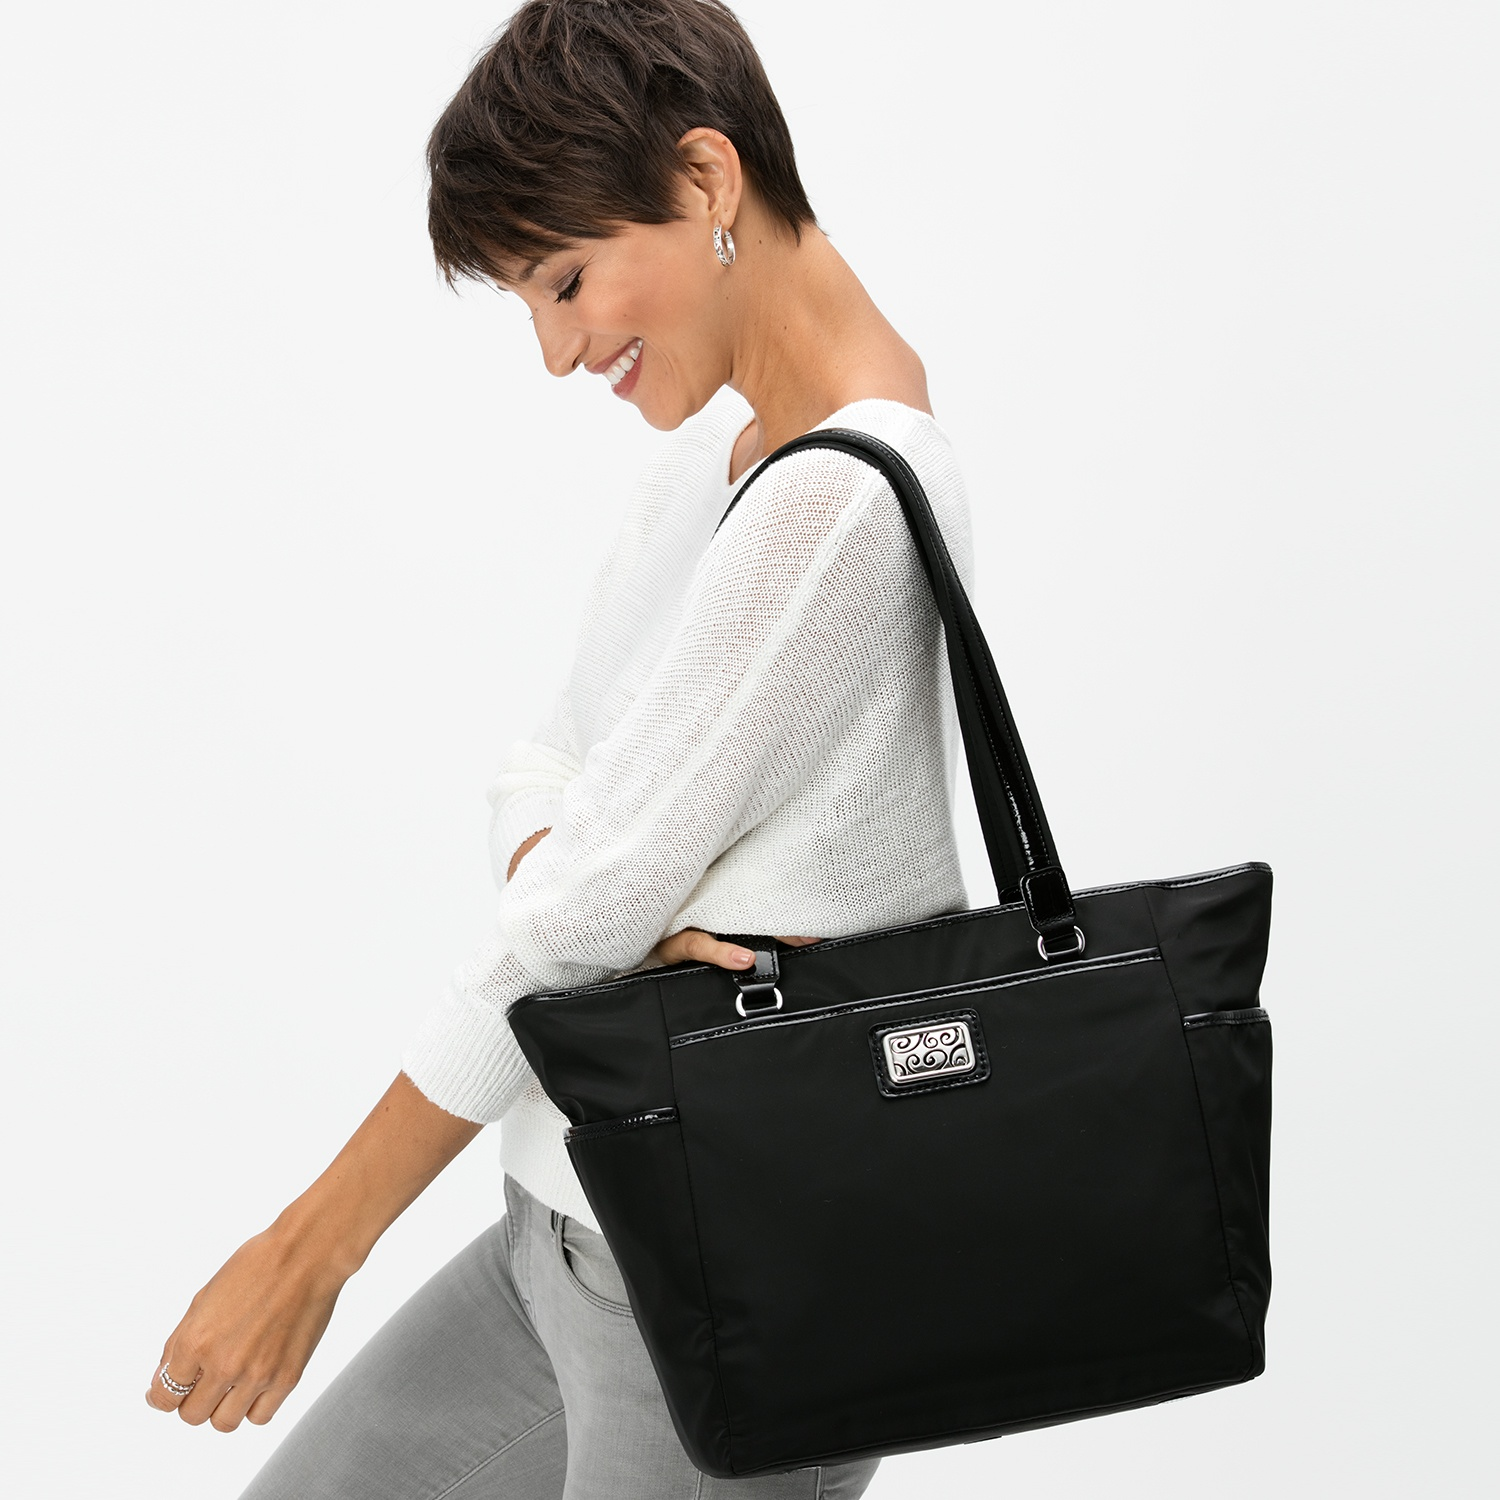 0f861f7509a Twister Squared Stevie Everywhere Tote Totes